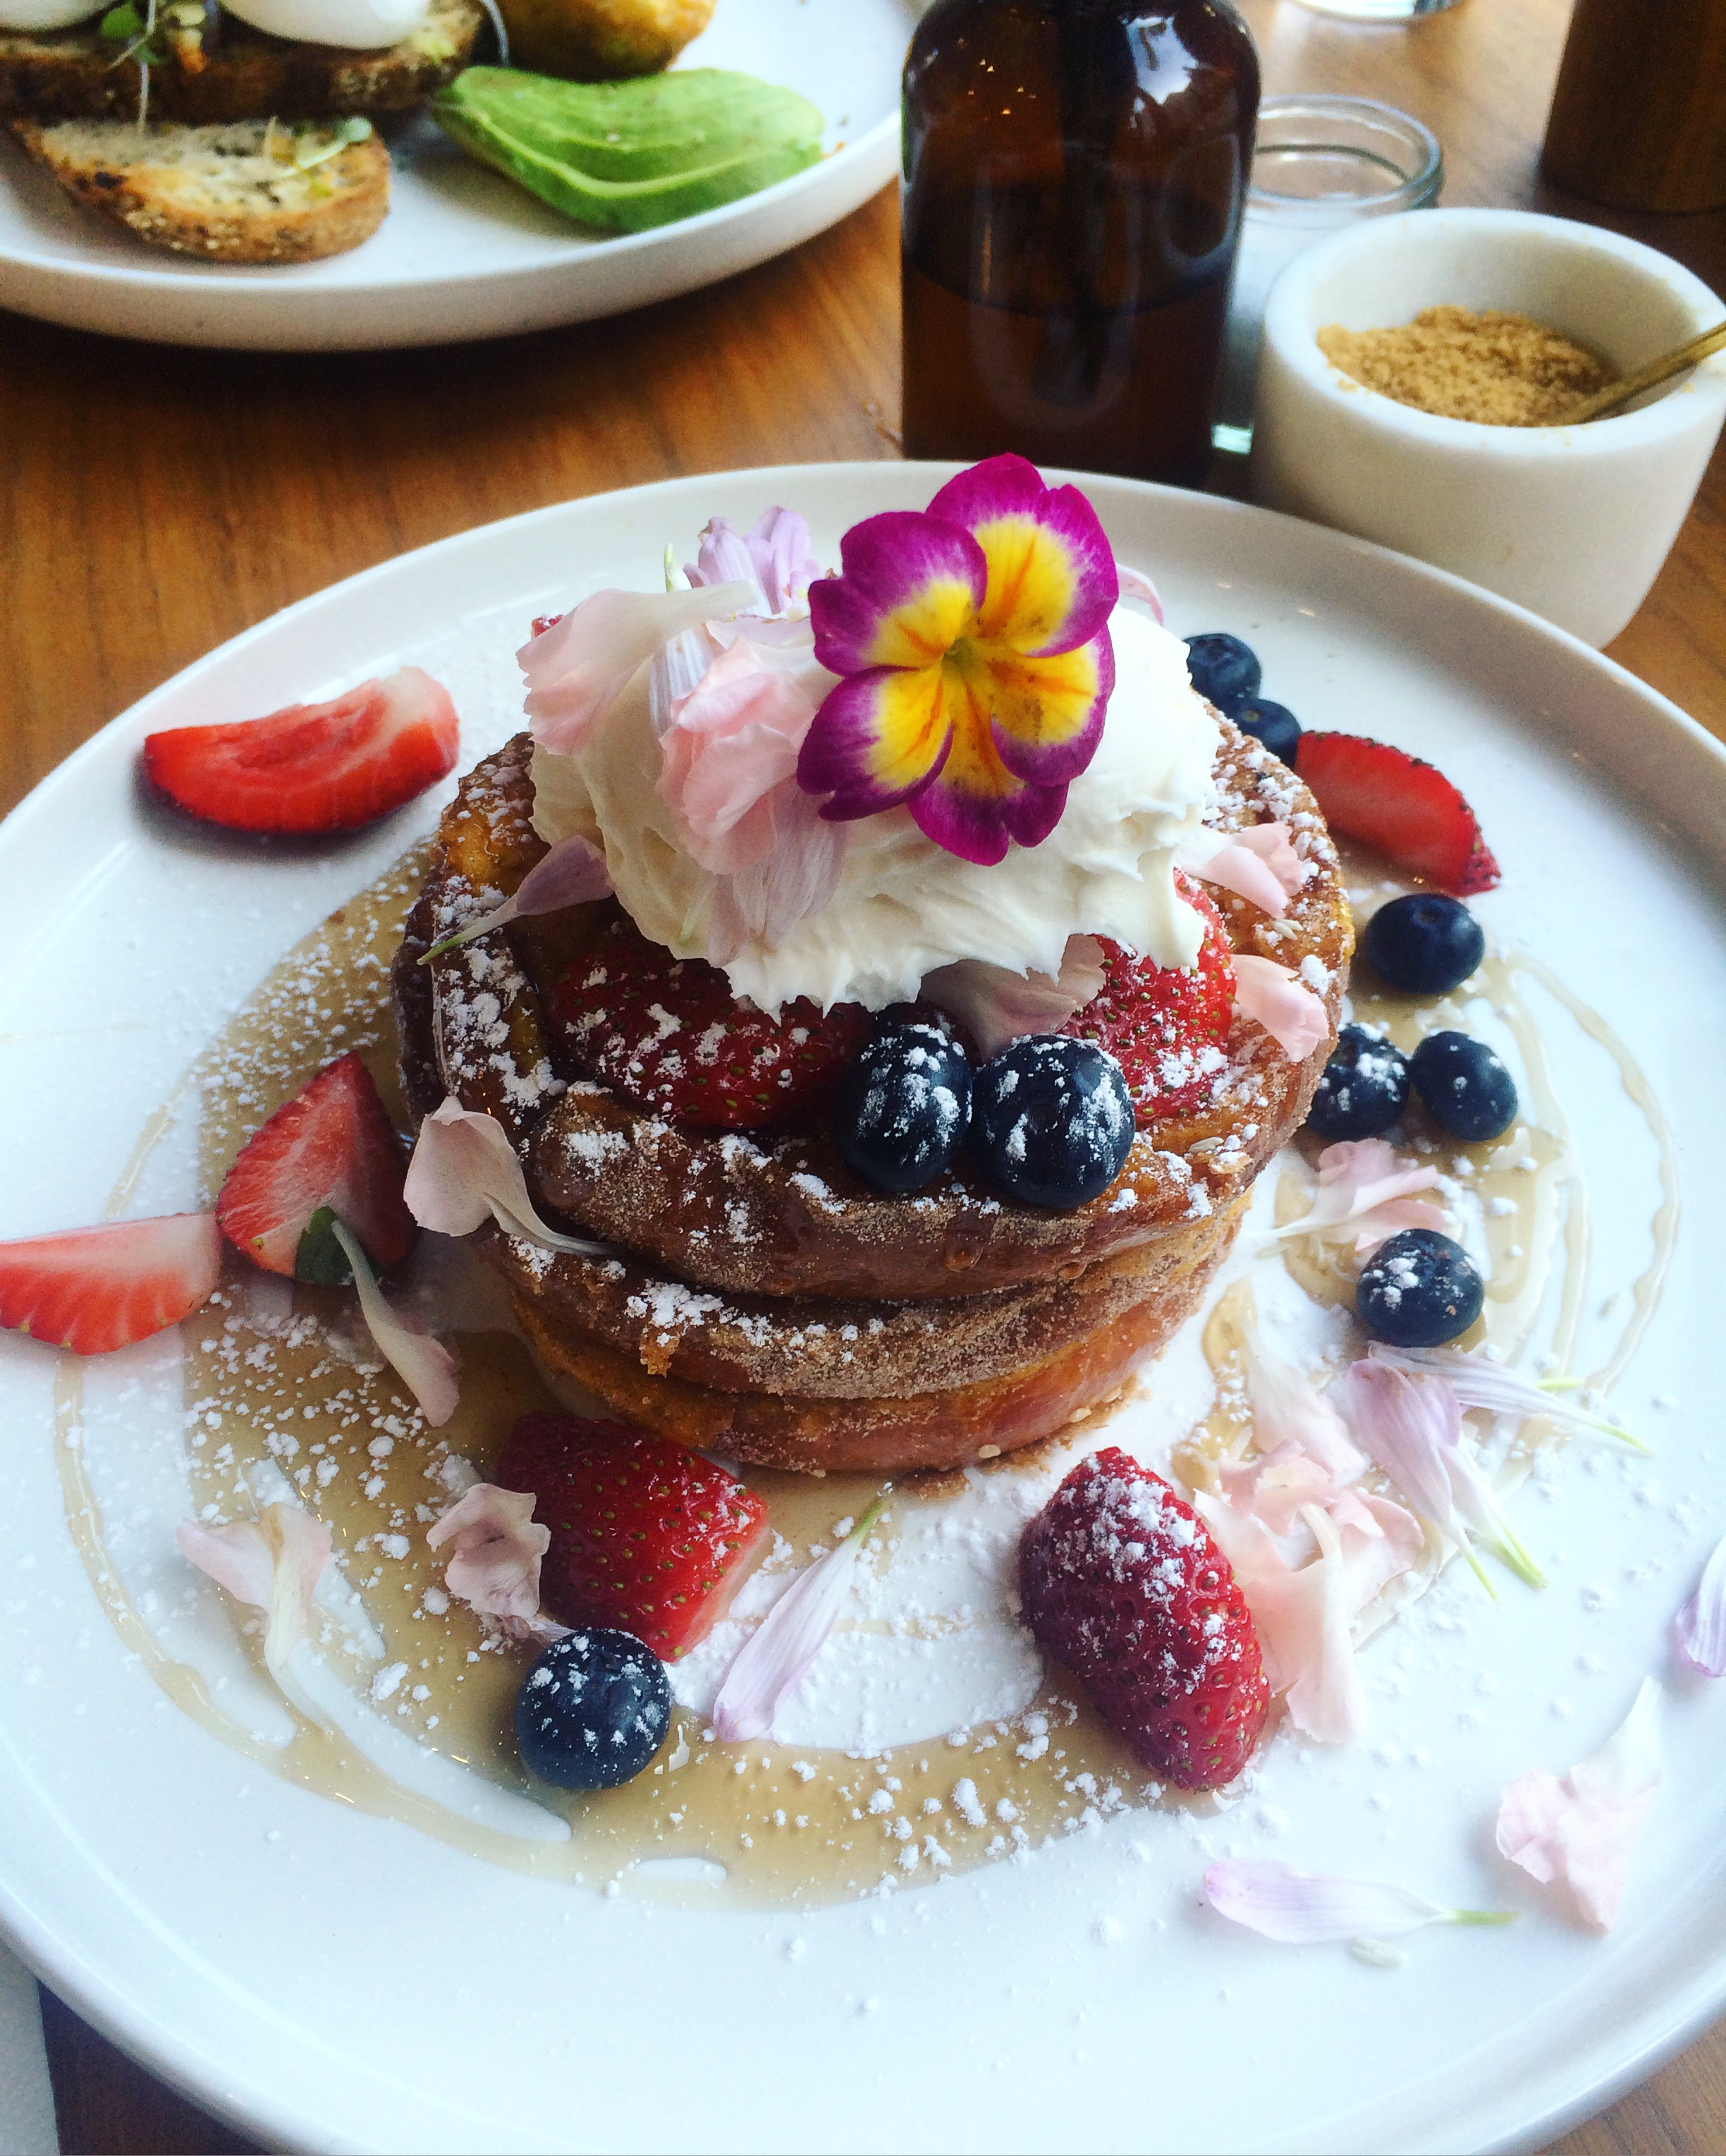 This one is the French Toast from  Darling Cafe  on Darling Street, South Yarra. It is dangerously close to my apartment!